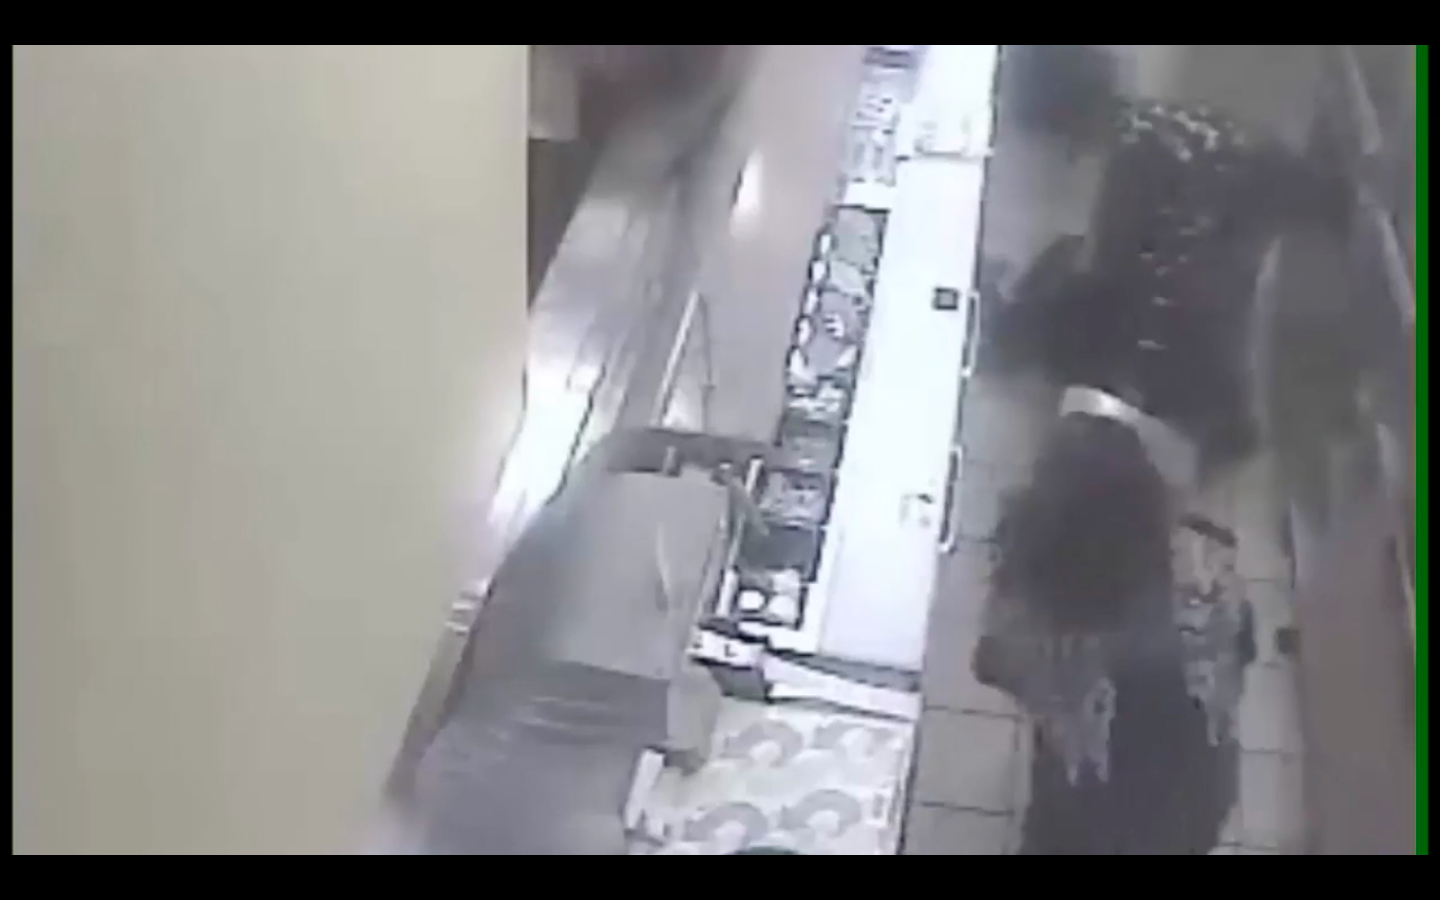 Still from Subway surveillance video released by the SFPD.  A woman can be seen hitting Flusche with what appears to be a food tray as Flusche continues to hit the victim.